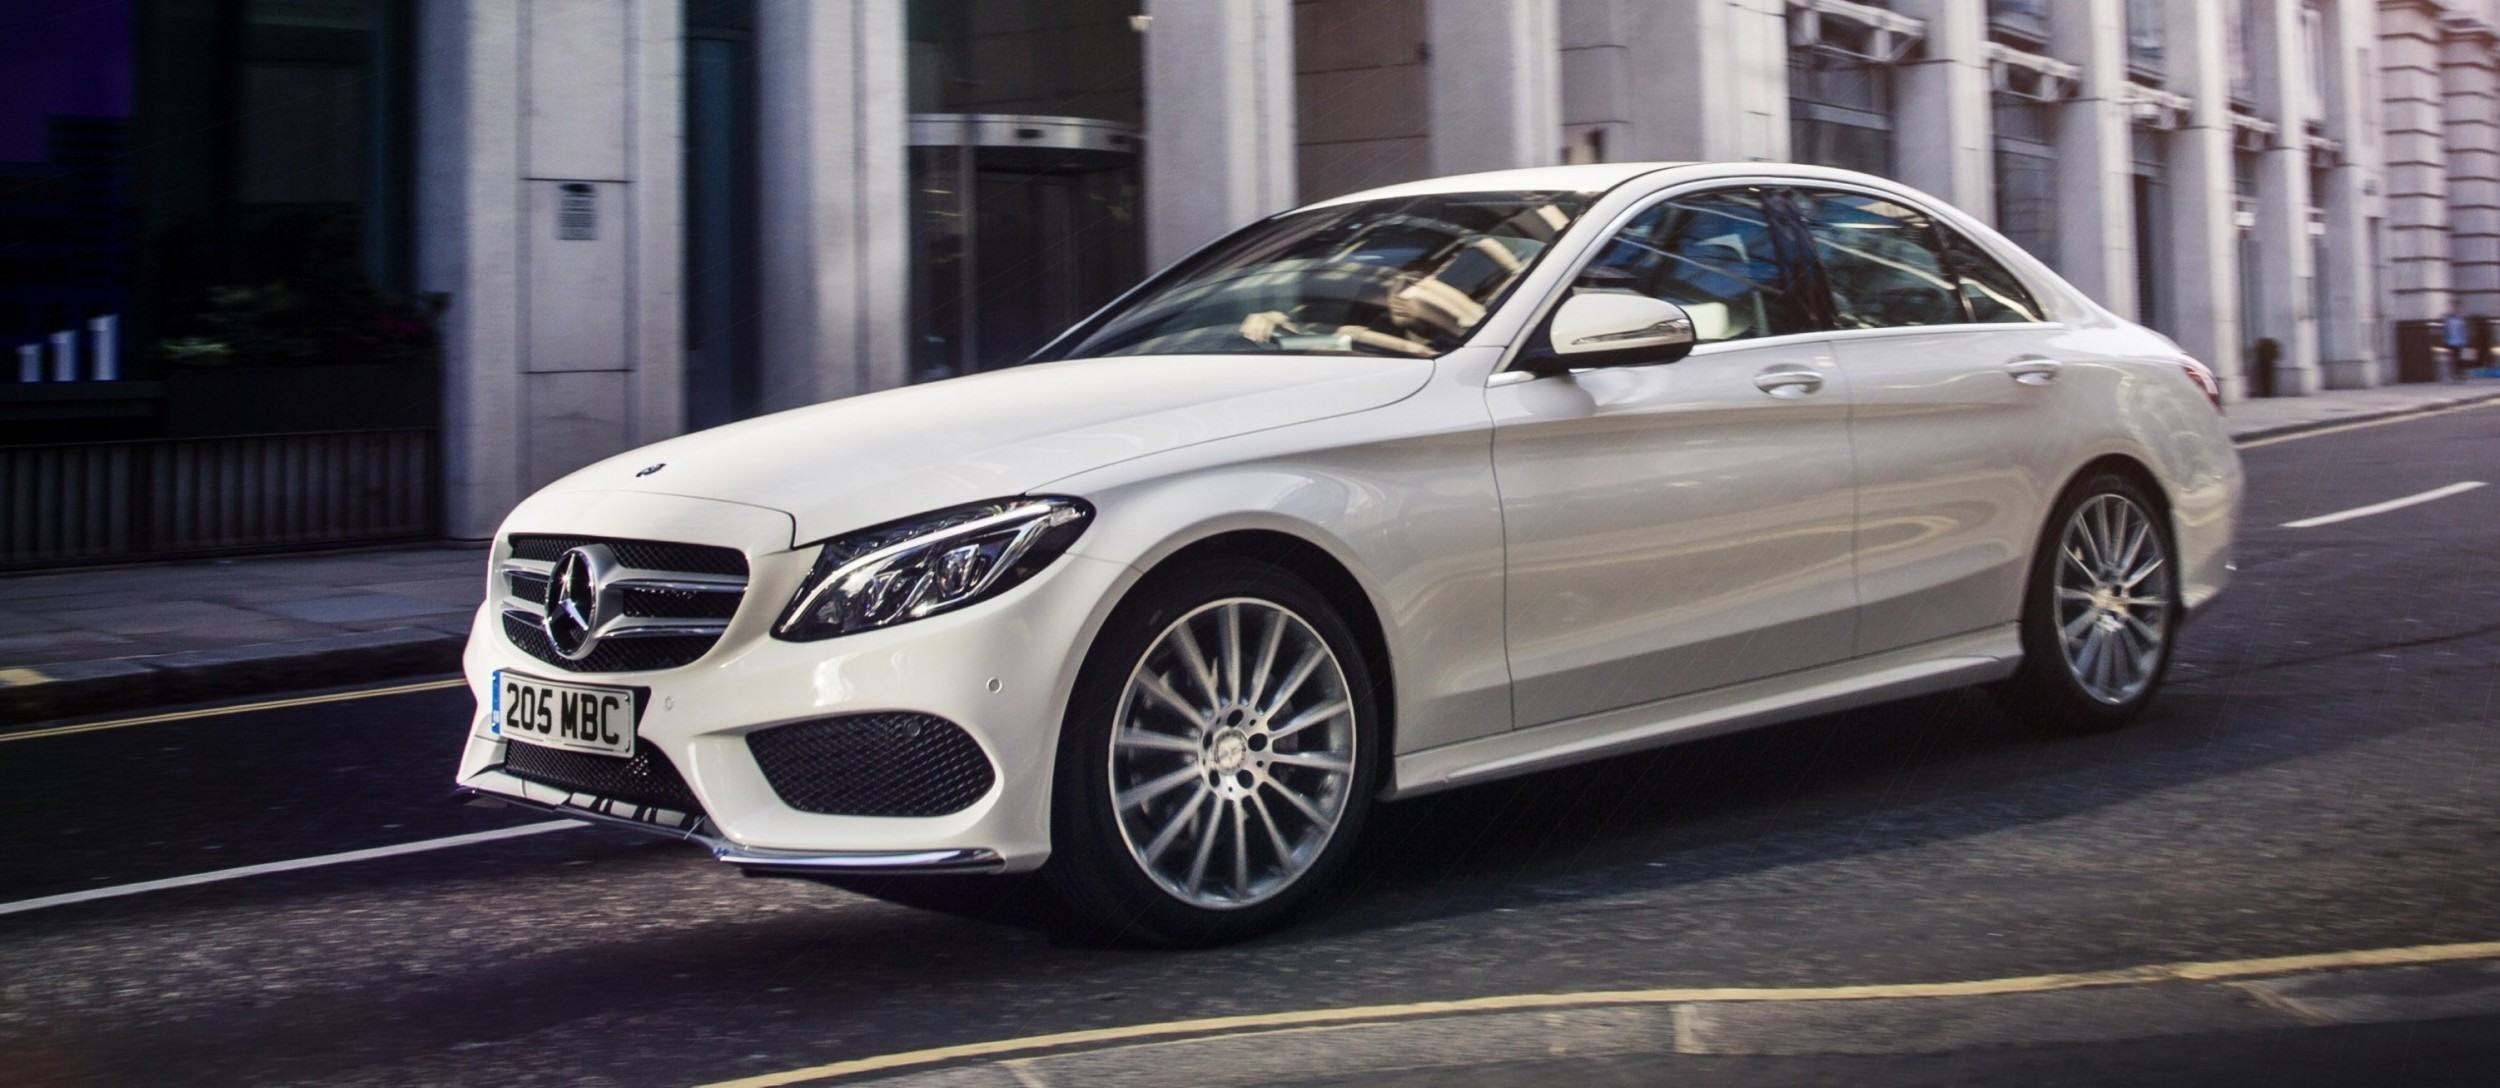 2015 Mercedes-Benz C-Class in 40 New Photos From London ...